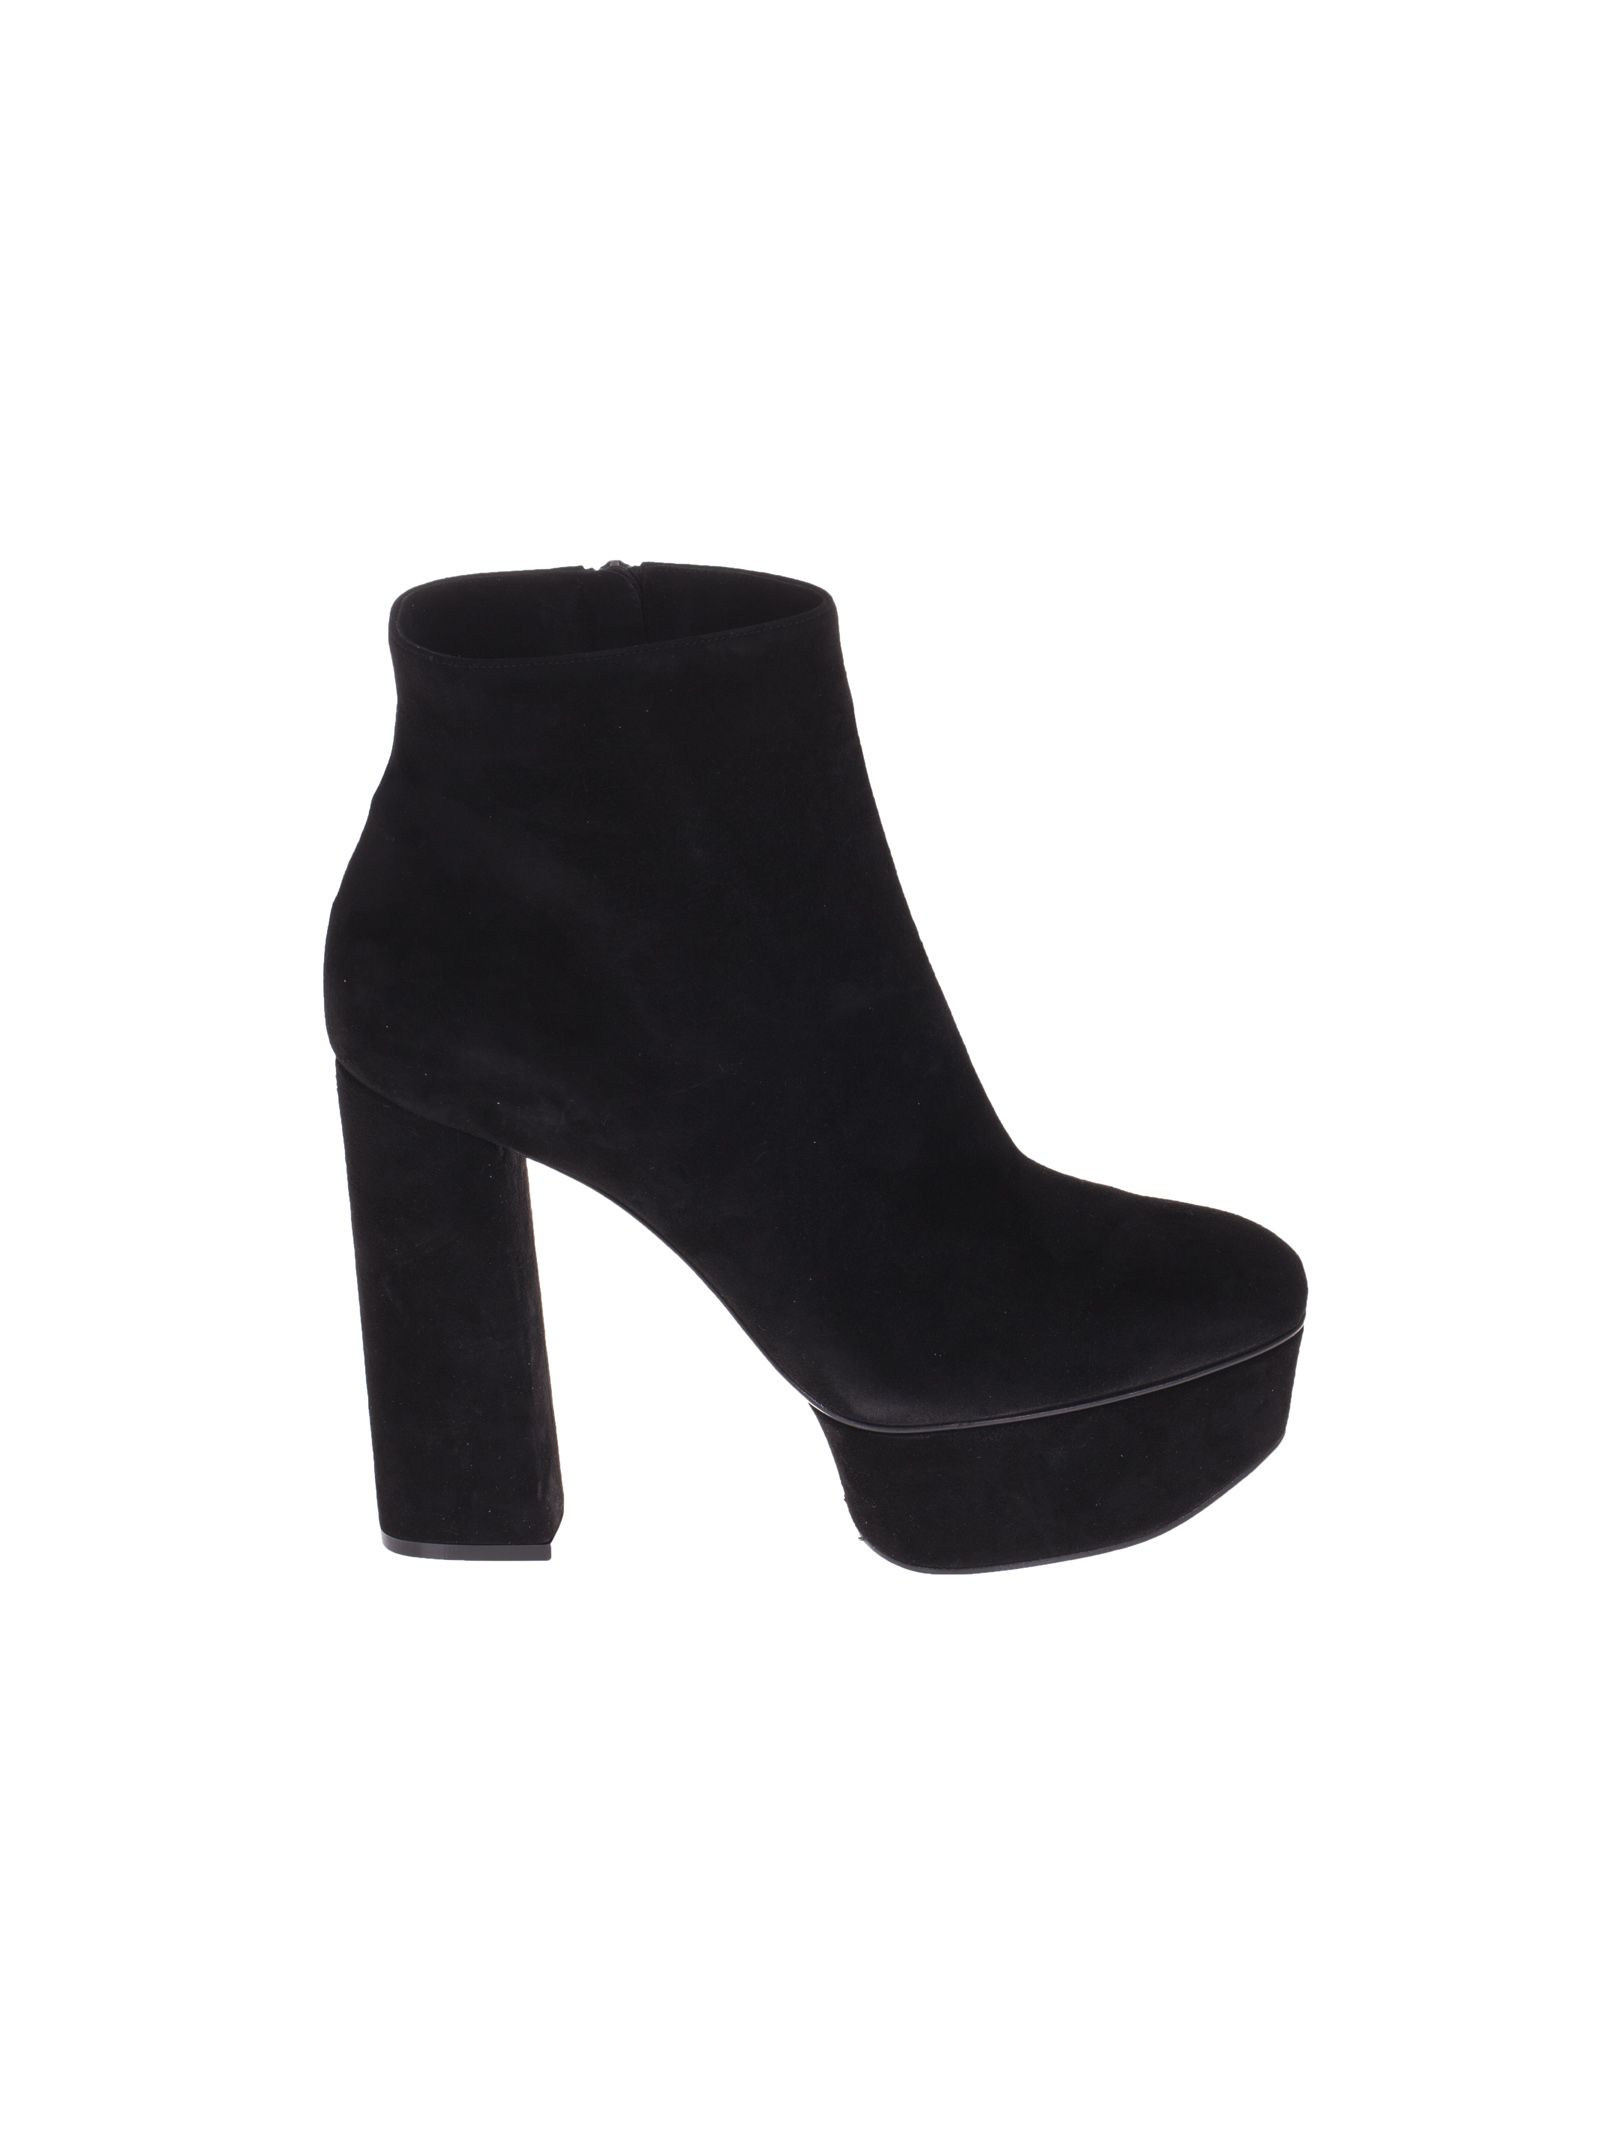 Platform Ankle Boots from Casadei: Black Platform Ankle Boots with round toe, branded insole and side zip fastening. -100% Chamois Leather -heel 115 mm - platform 40 mm -height 11 cm